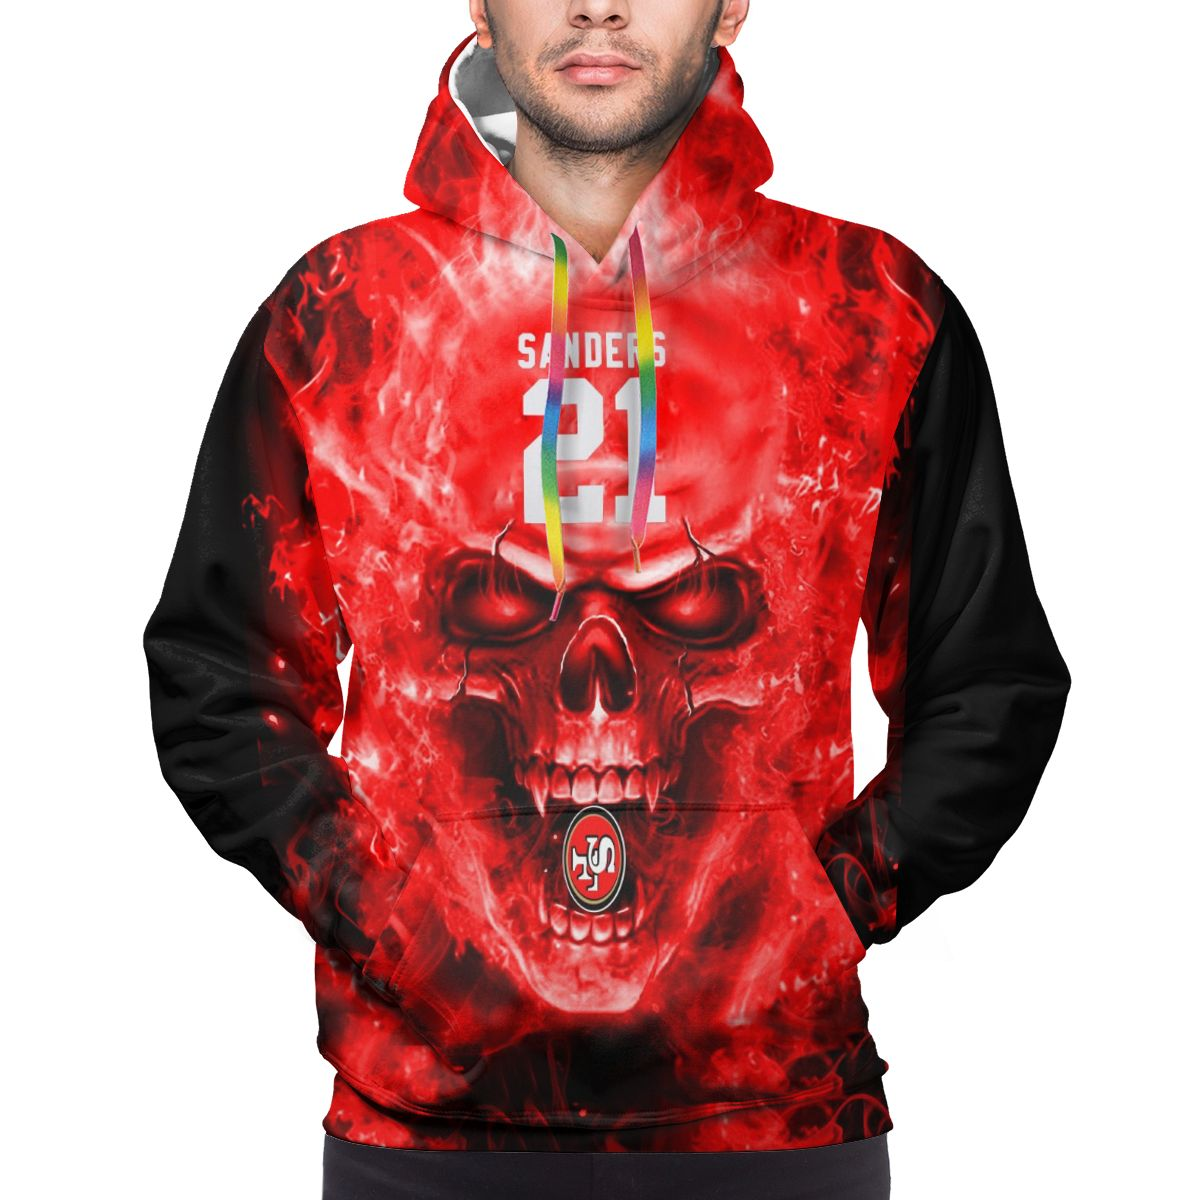 3D Skull 49ers #21 Deion Sanders Logo Print Hoodies For Men Pullover Sweatshirt